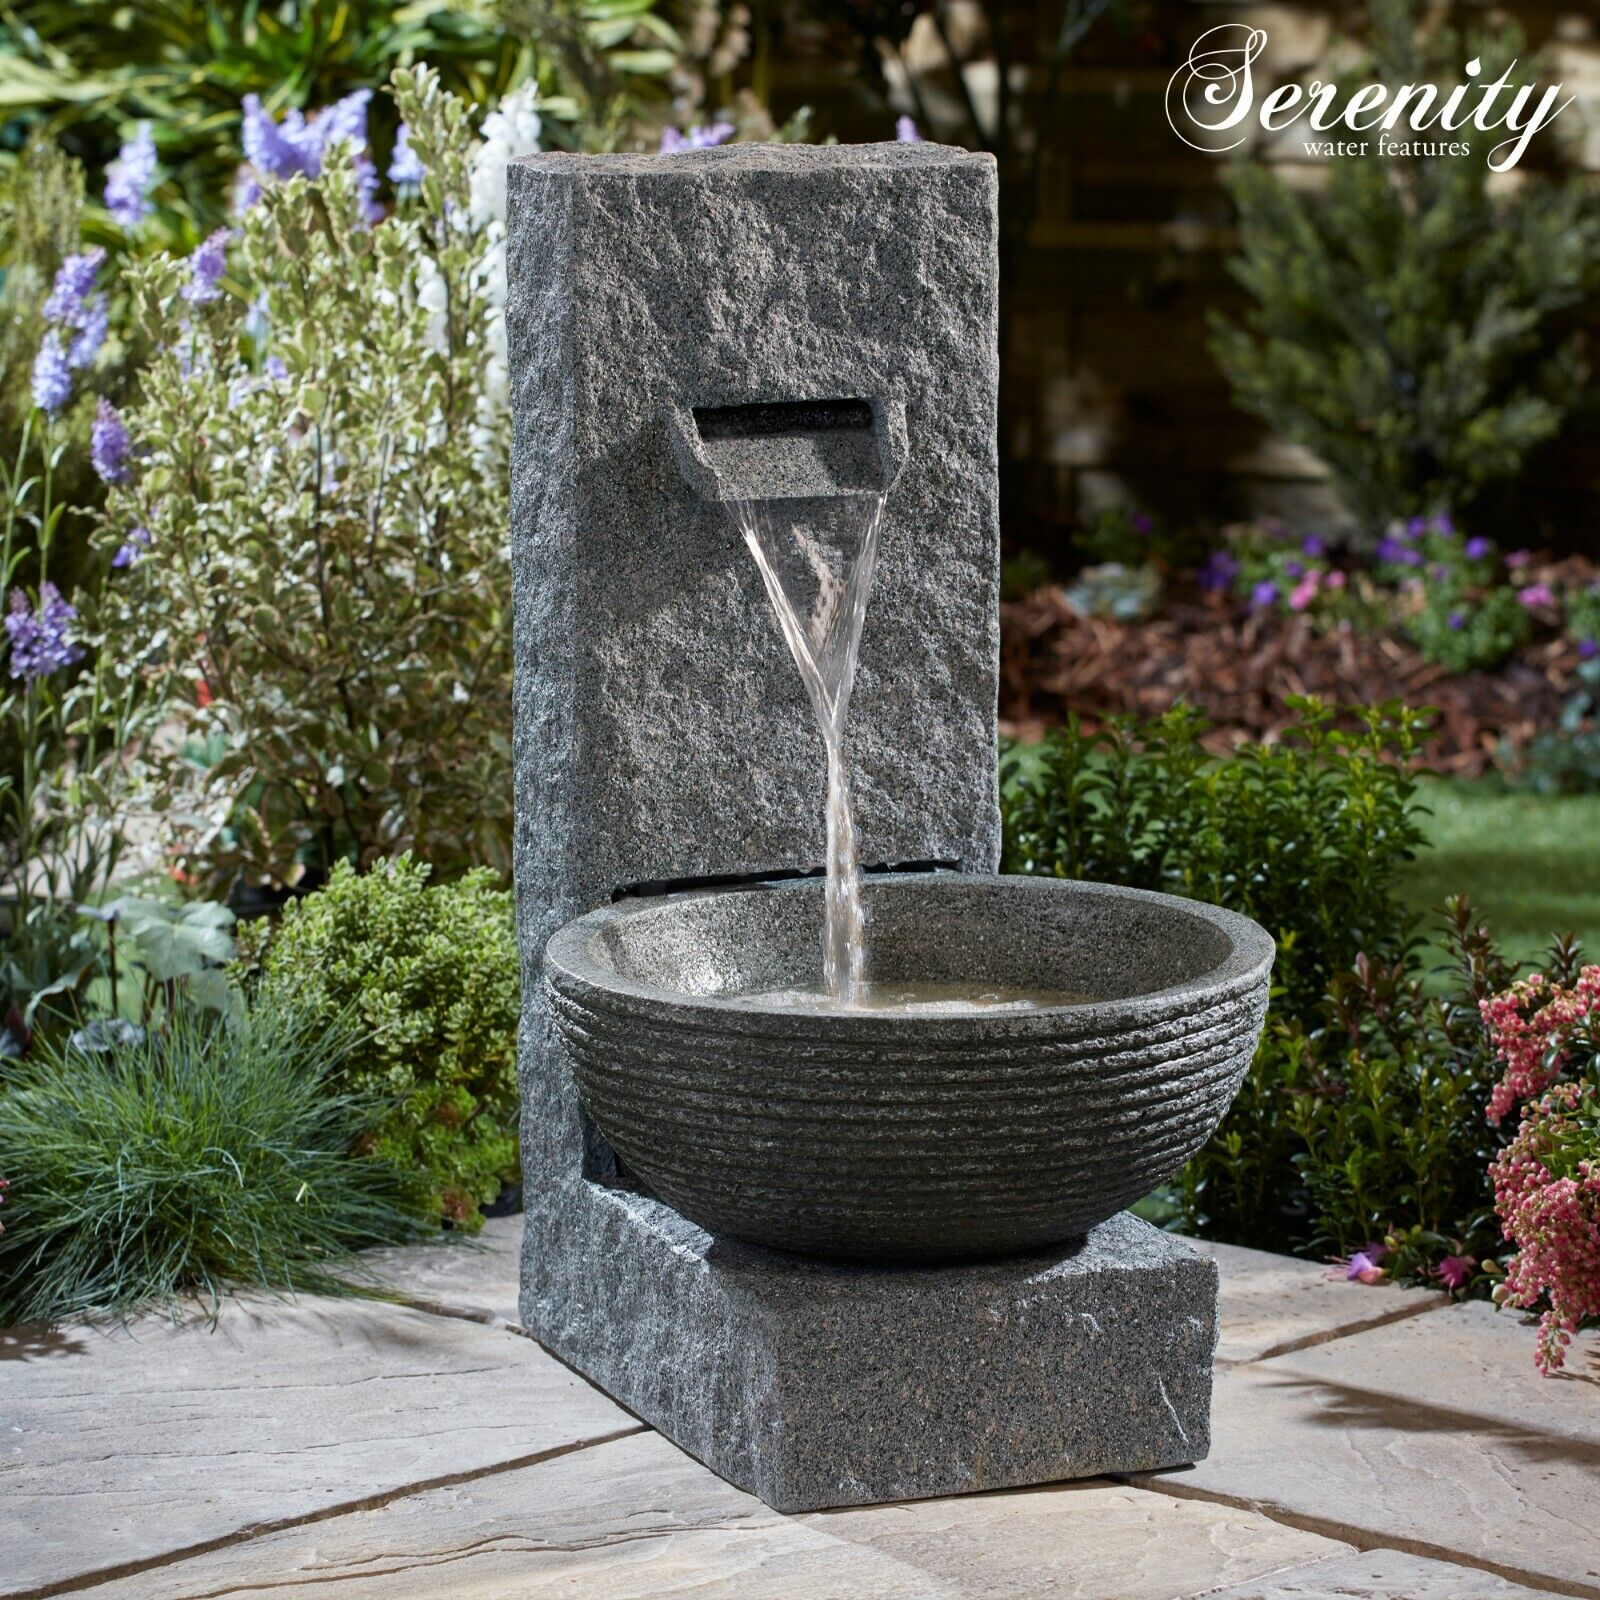 Details About Serenity Cascade Bowl Water Feature Led 71cm Garden Patio Fountain Ornament New